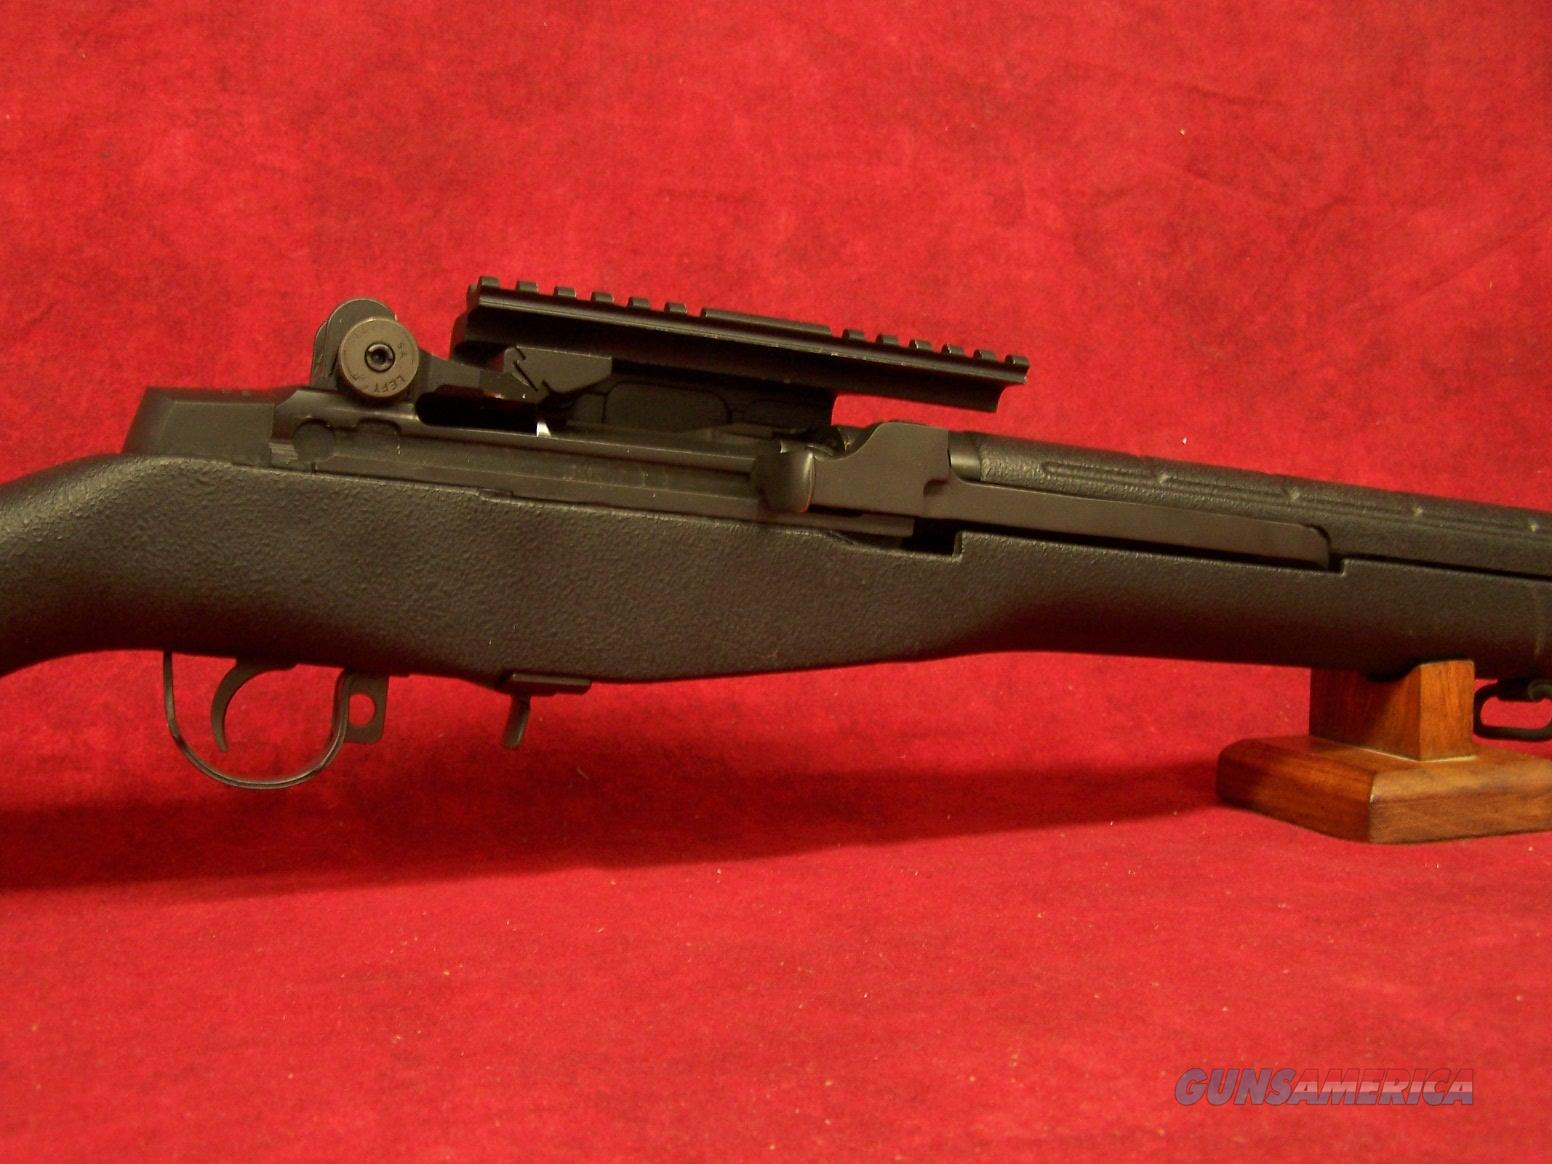 Springfield Armory M1A Super Match Black McMillian Stock with Stainless Steel Barrel 7.62 NATO (SA9804)  Guns > Rifles > Springfield Armory Rifles > M1A/M14